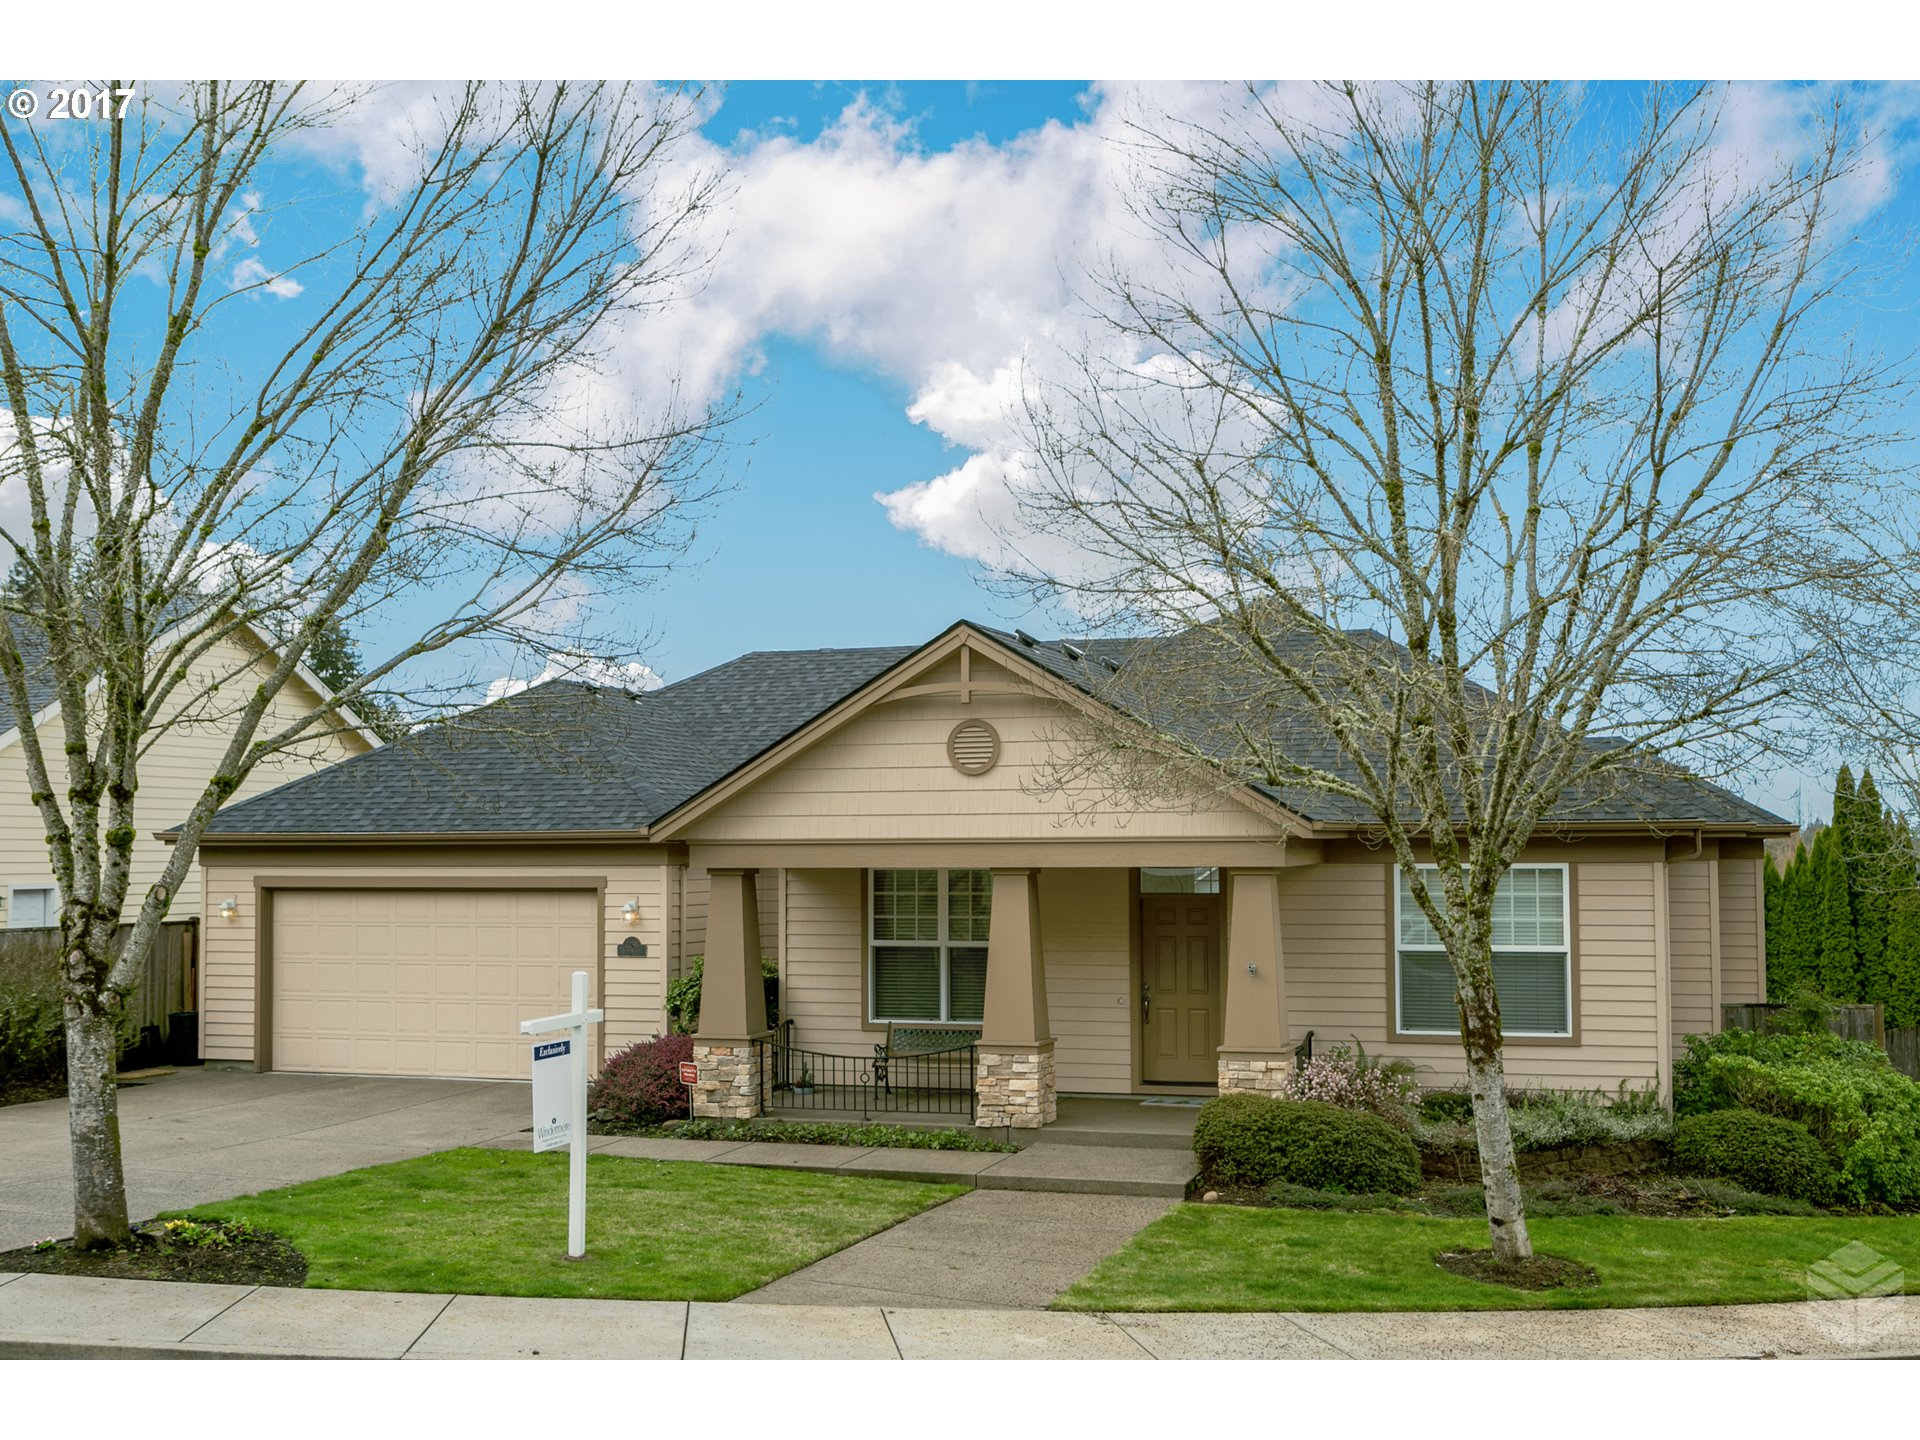 2298 37TH ST, Springfield, OR 97477